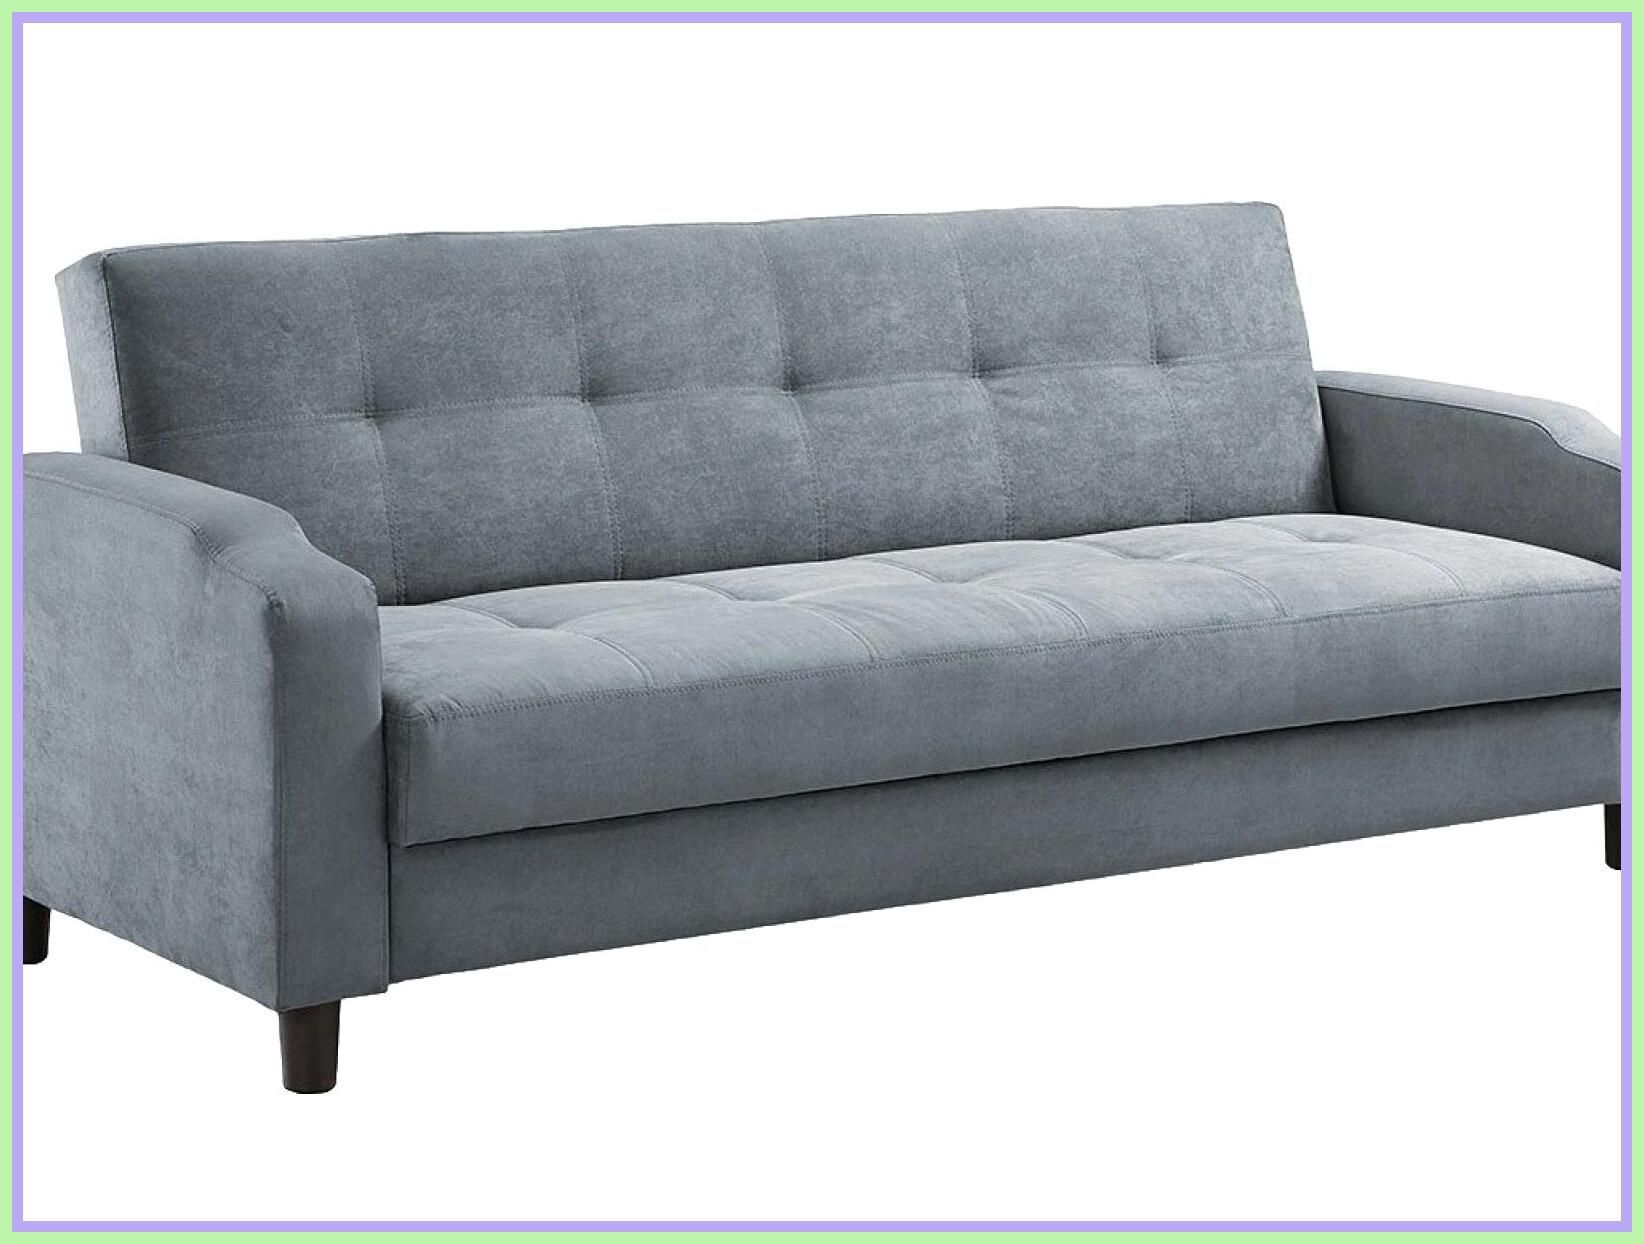 32 Reference Of Small Curved Sofa Canada In 2020 Sofa Bed Sleeper Small Curved Sofa Curved Sofa